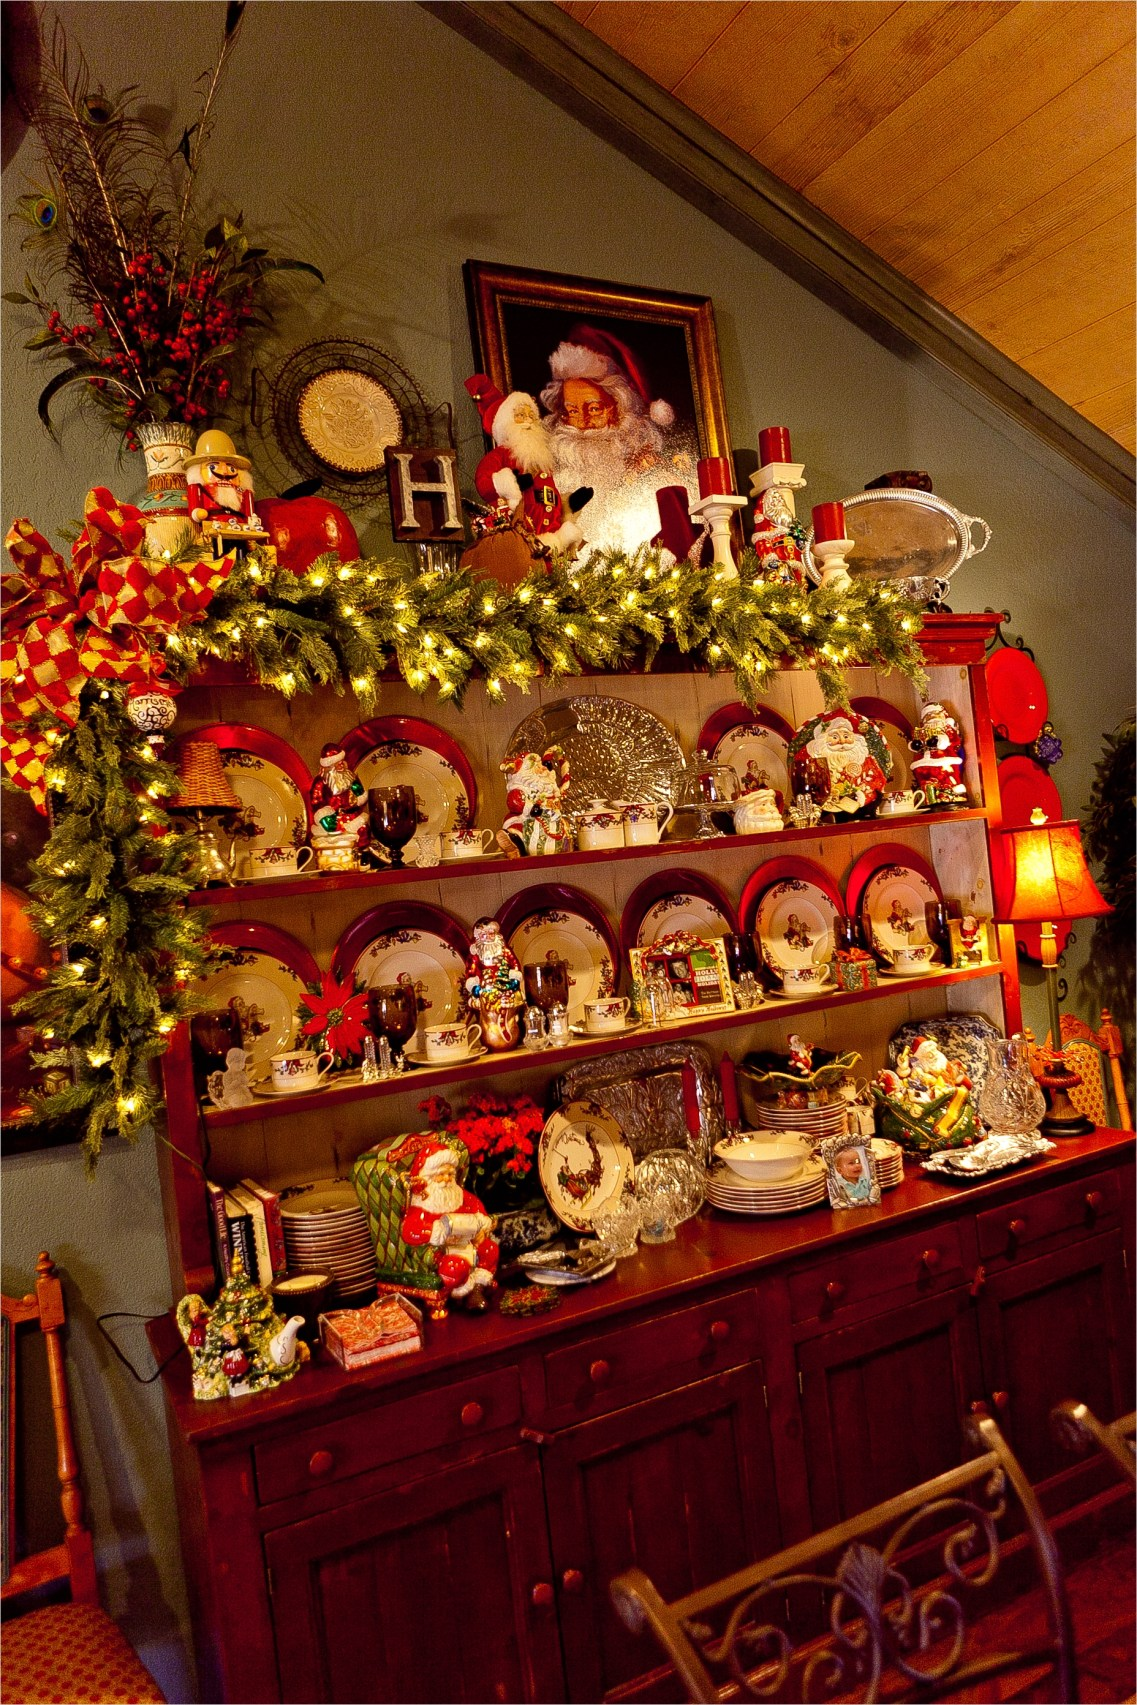 42 Stunning Country Christmas Centerpieces Ideas Ideas 14 Show Me More… Of A Country French Home Decorated for Christmas 1